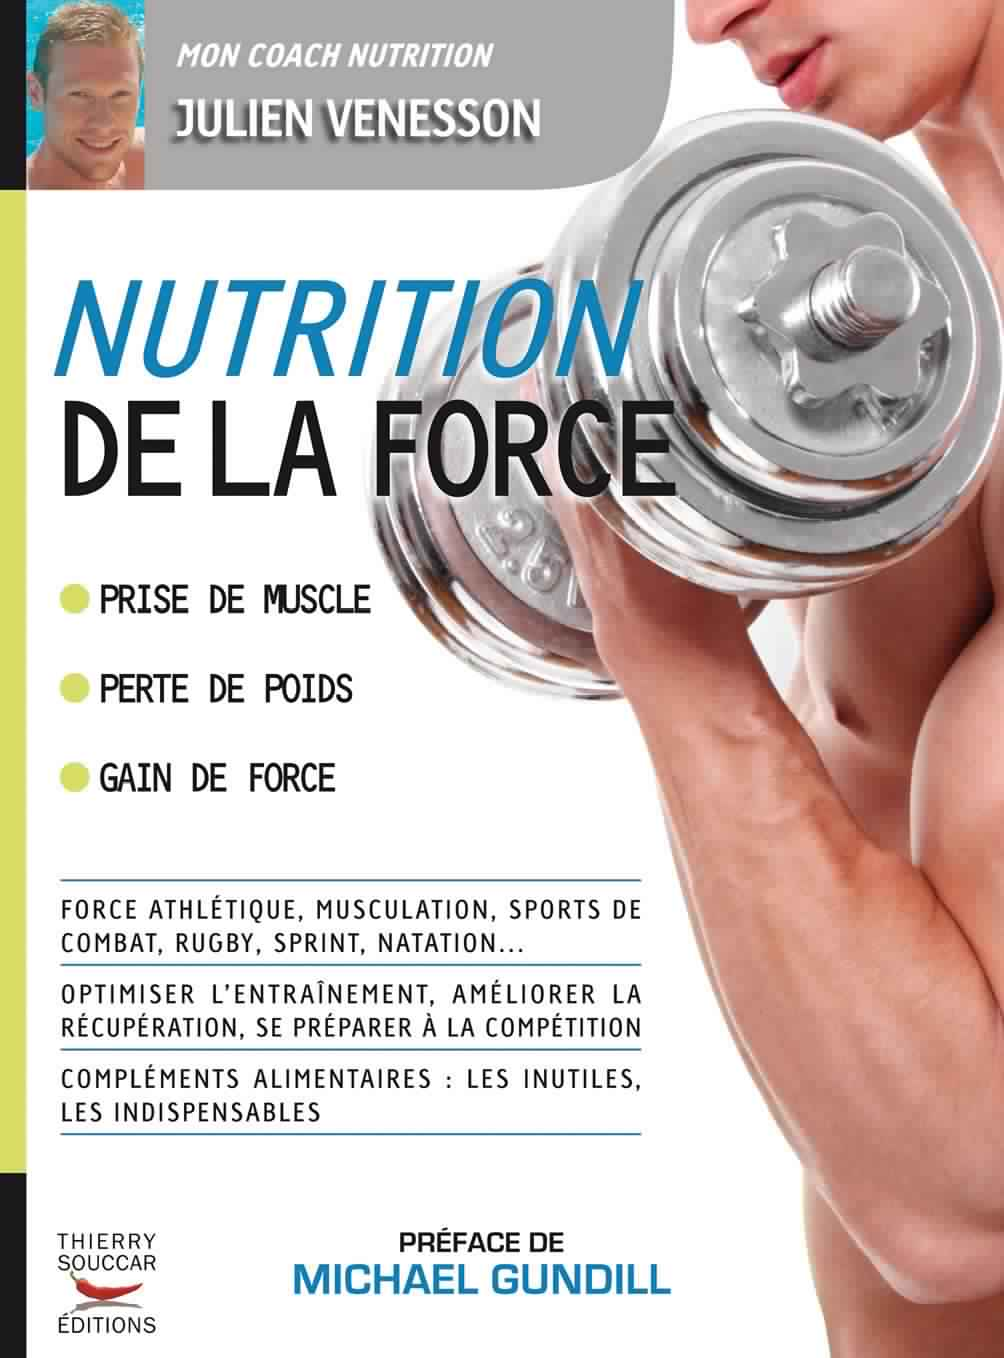 Nutrition de la force - Julien Venesson free download